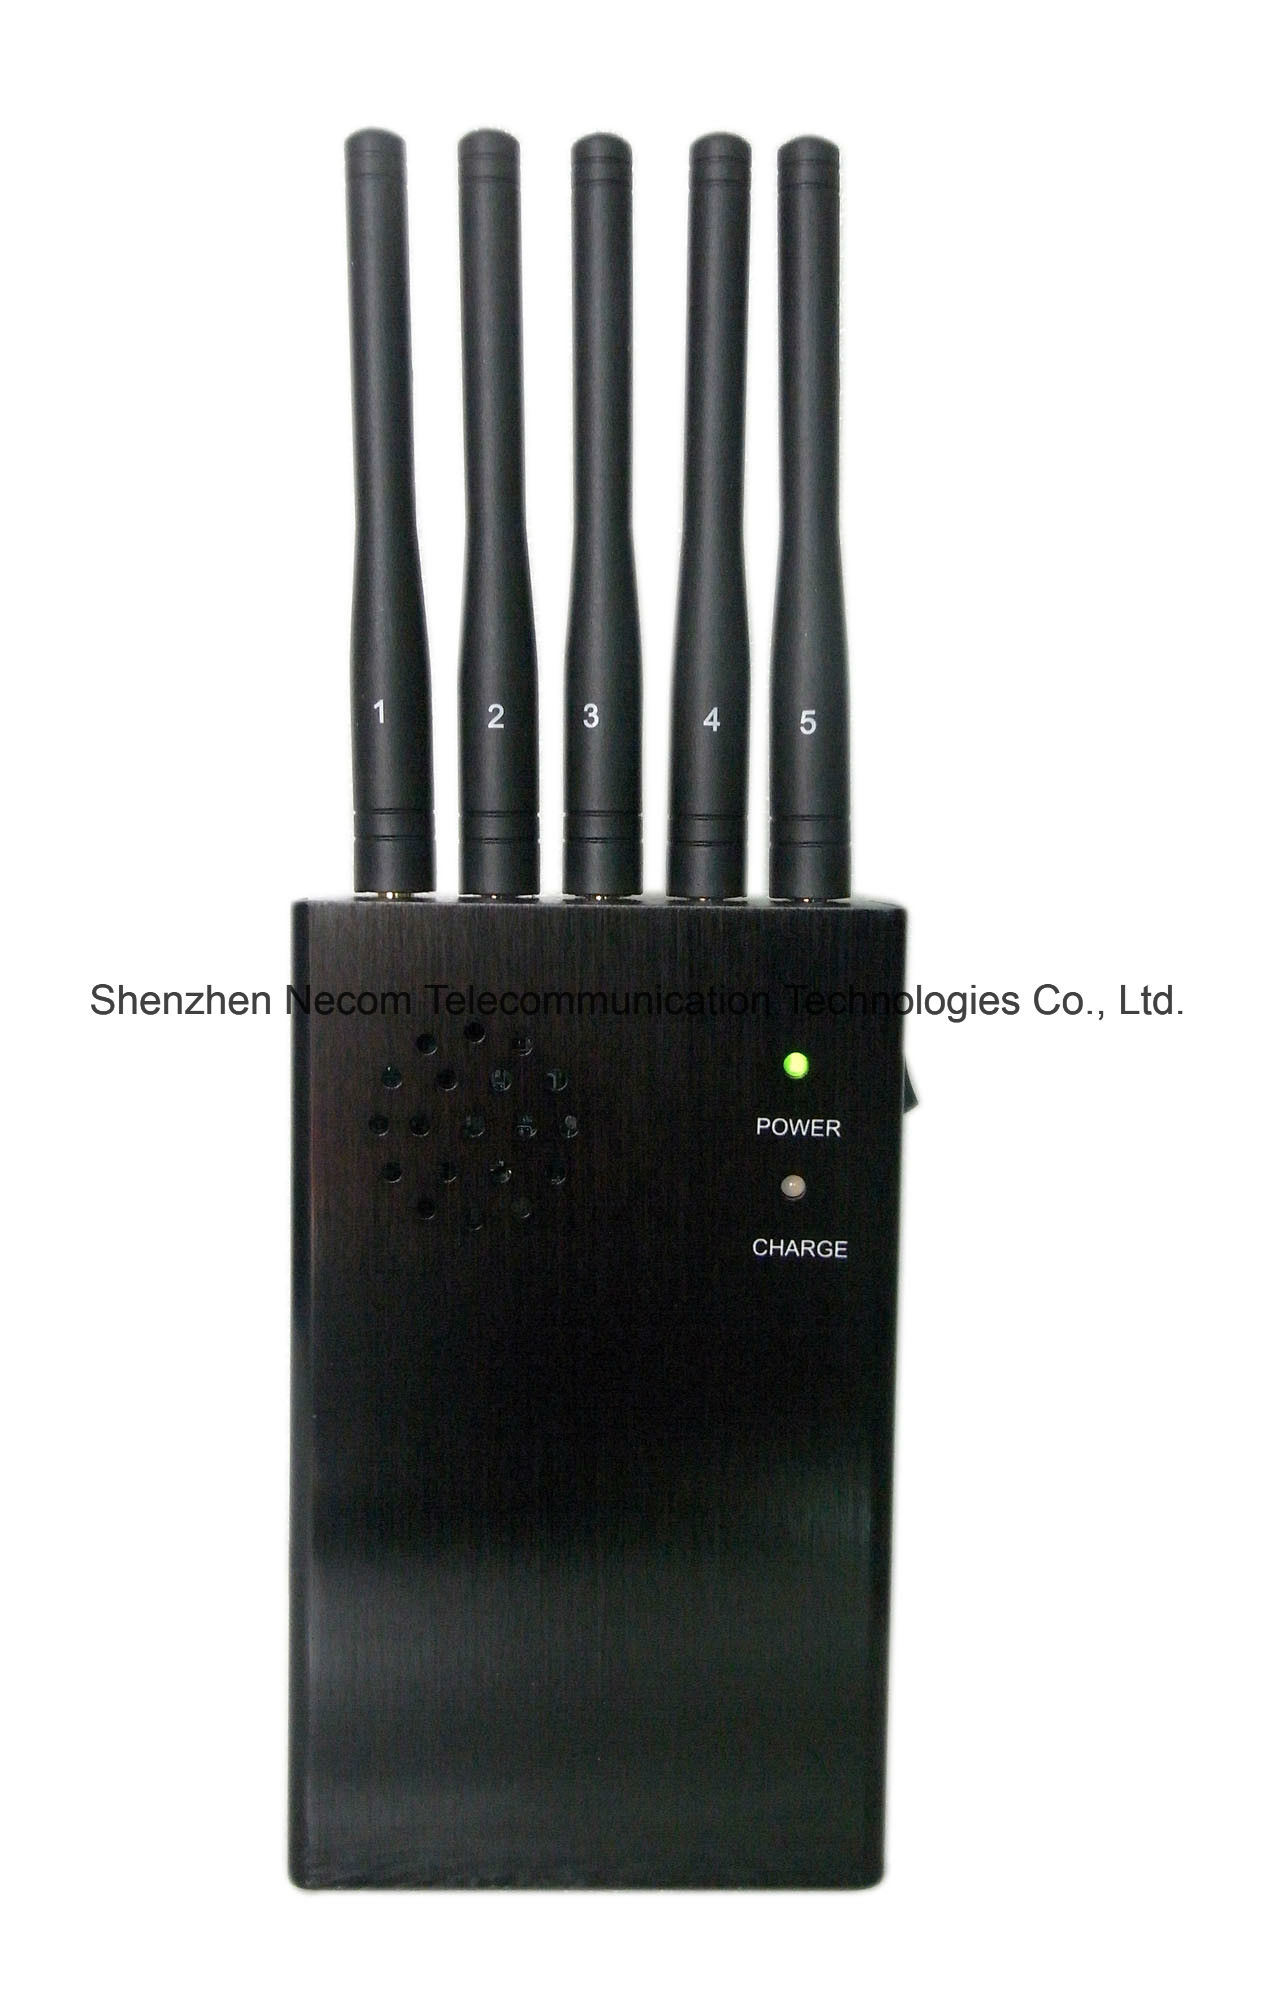 jammerjab kirby tx apartments - China Cellulare Segnale Jammer, New Handheld 5 Bands 4G Jammer WiFi GPS Lojack Jammer with Car Charger, Portable Mobile Phone & Wi-Fi/Bluetooth Jammer - China 5 Band Signal Blockers, Five Antennas Jammers